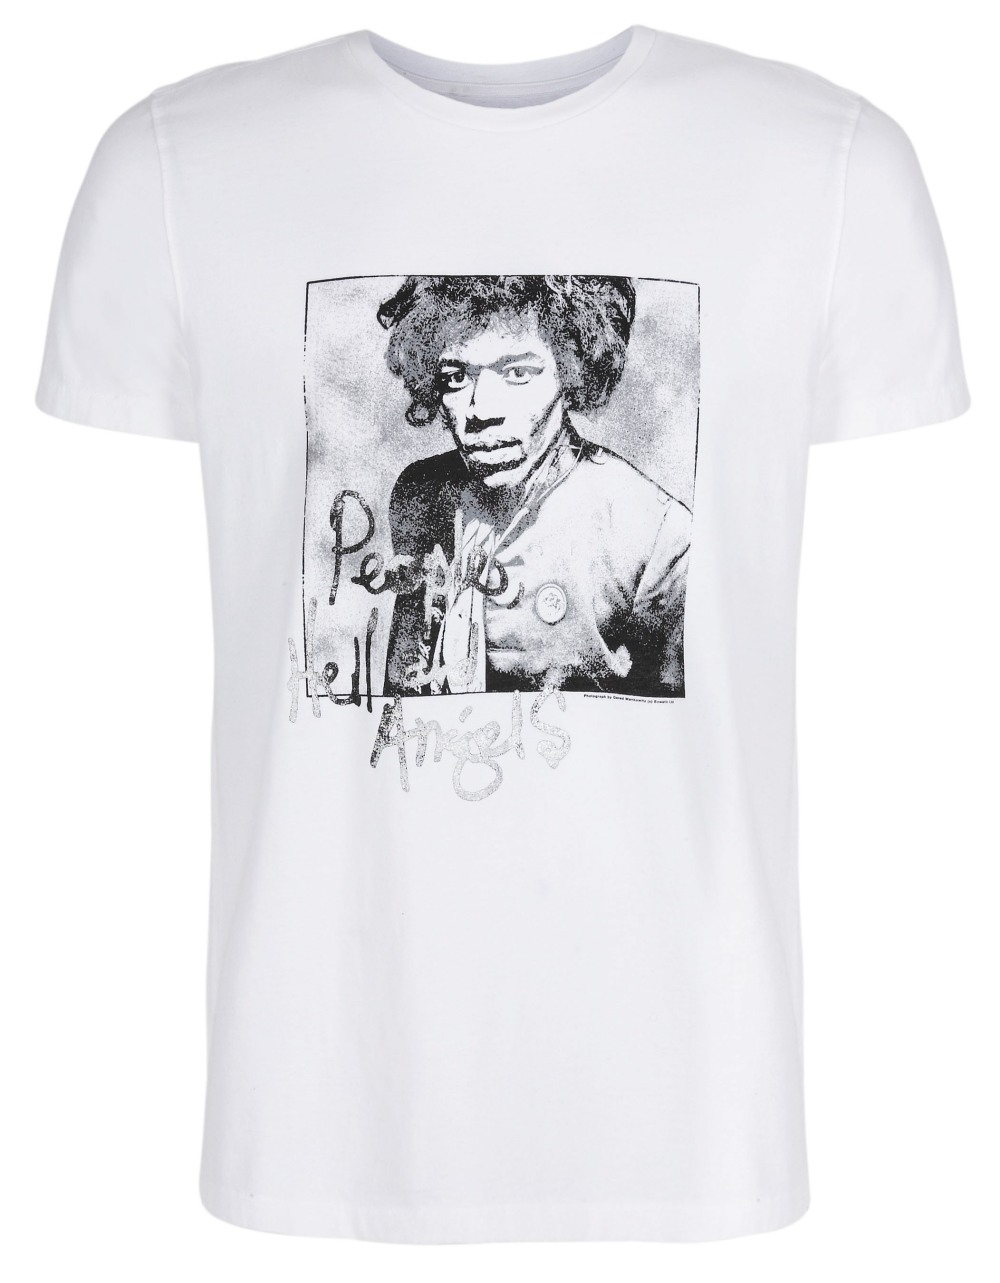 GAP INC. JIMI HENDRIX T-SHIRTS